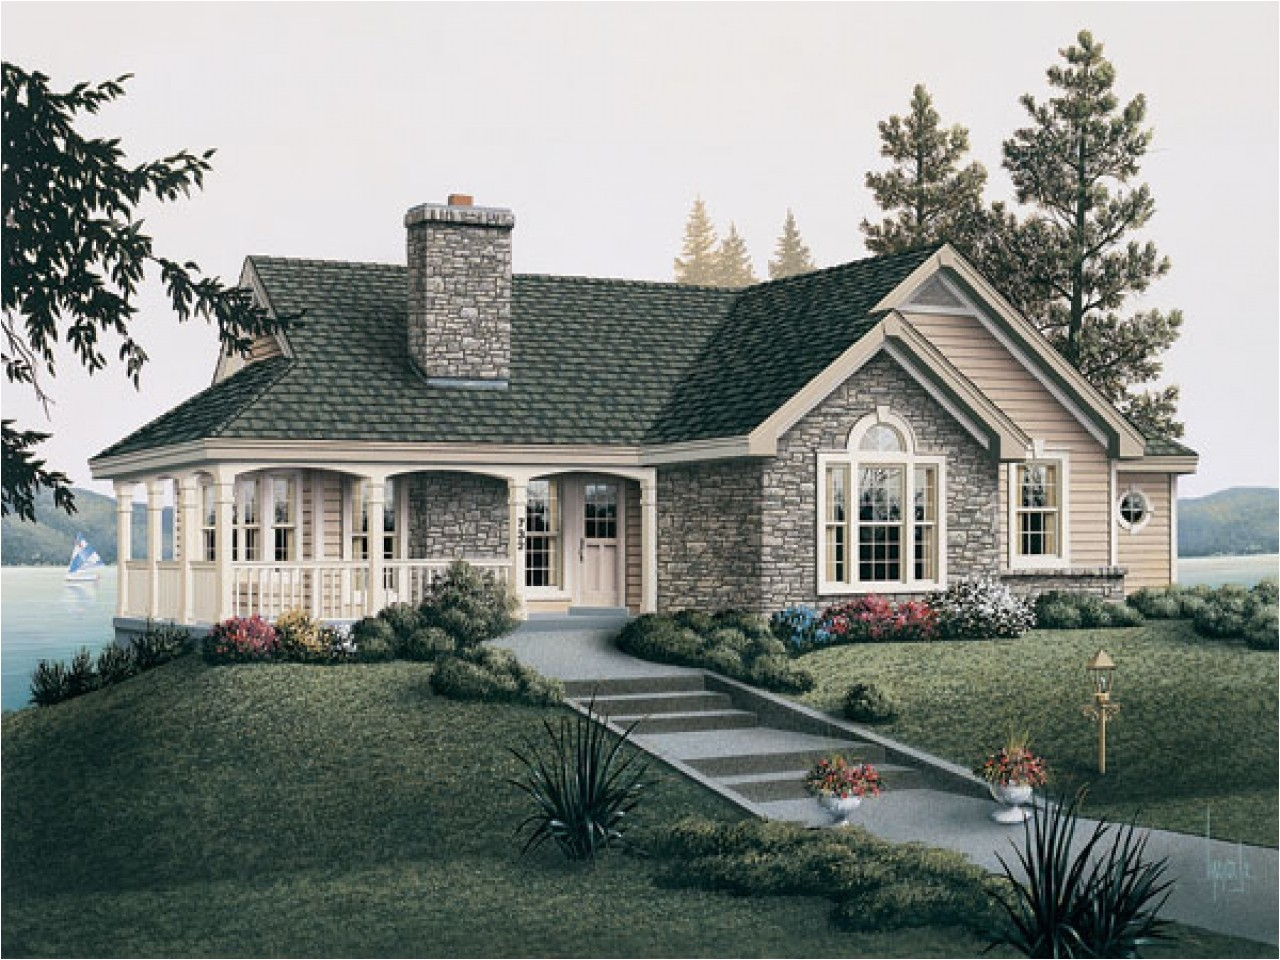 cc8145a56b76d92e country cottage house plans with porches french country cottage house plans